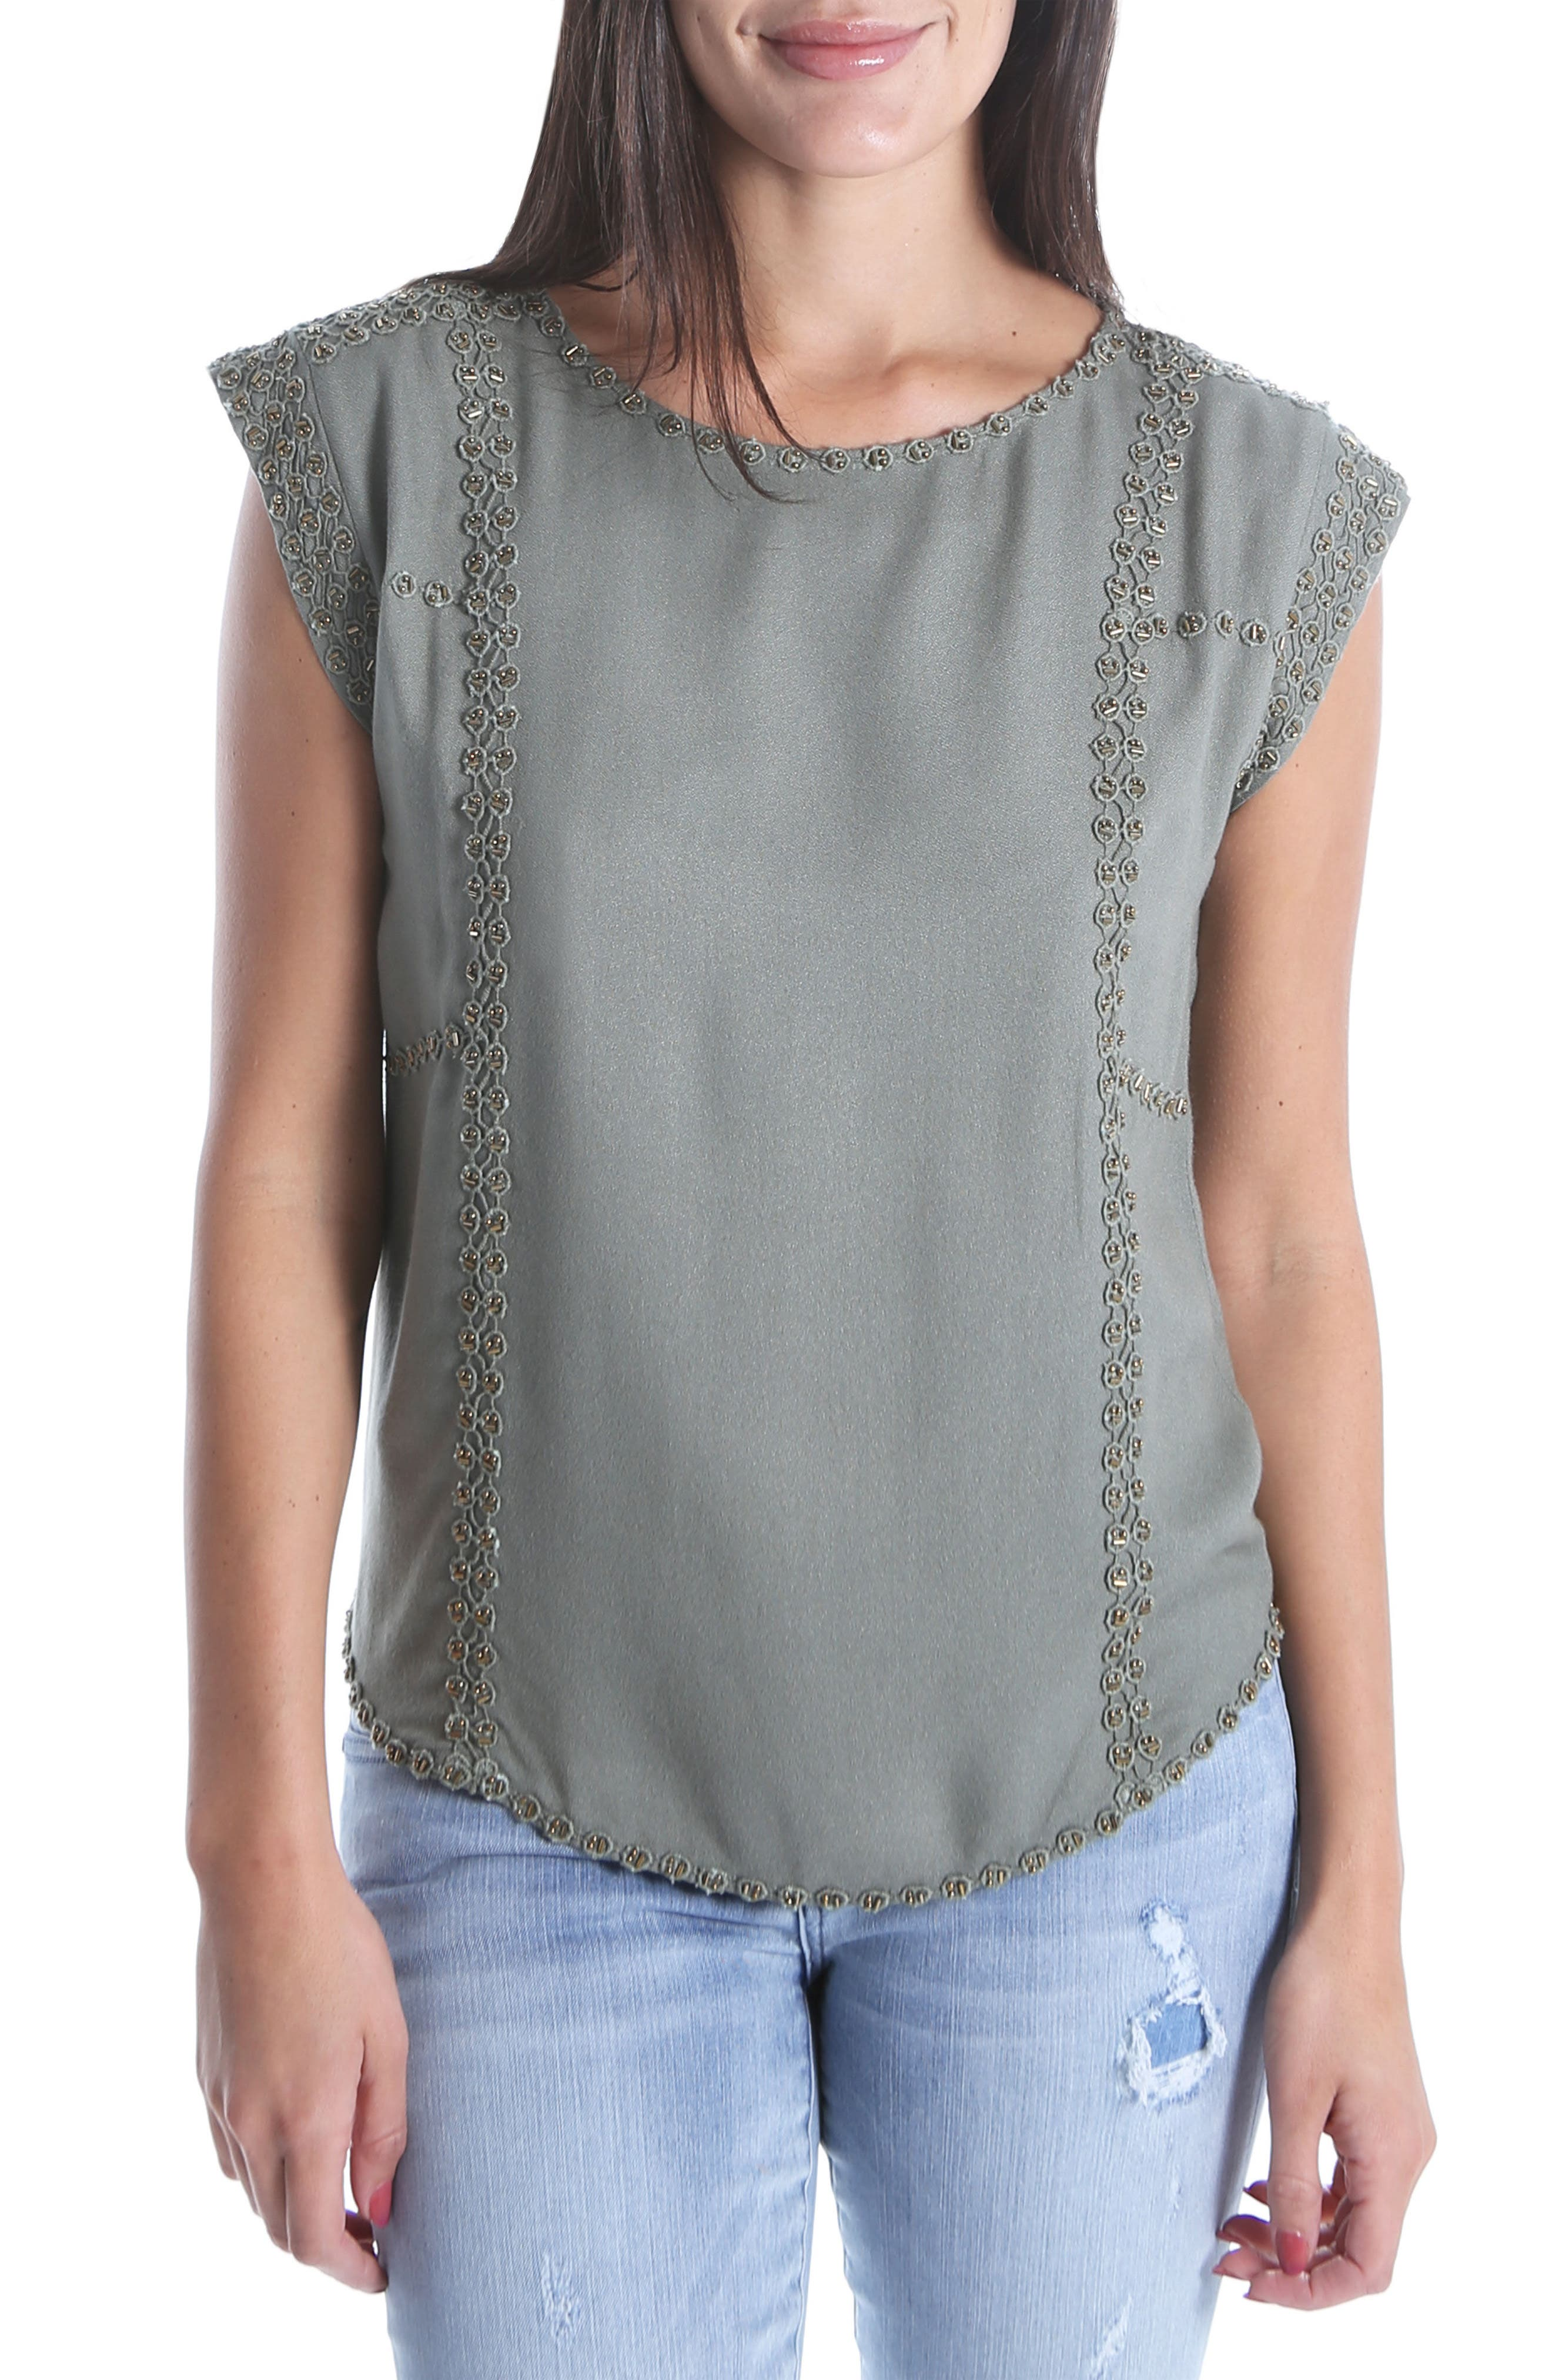 Nenna Embellished Top,                             Main thumbnail 1, color,                             Olive